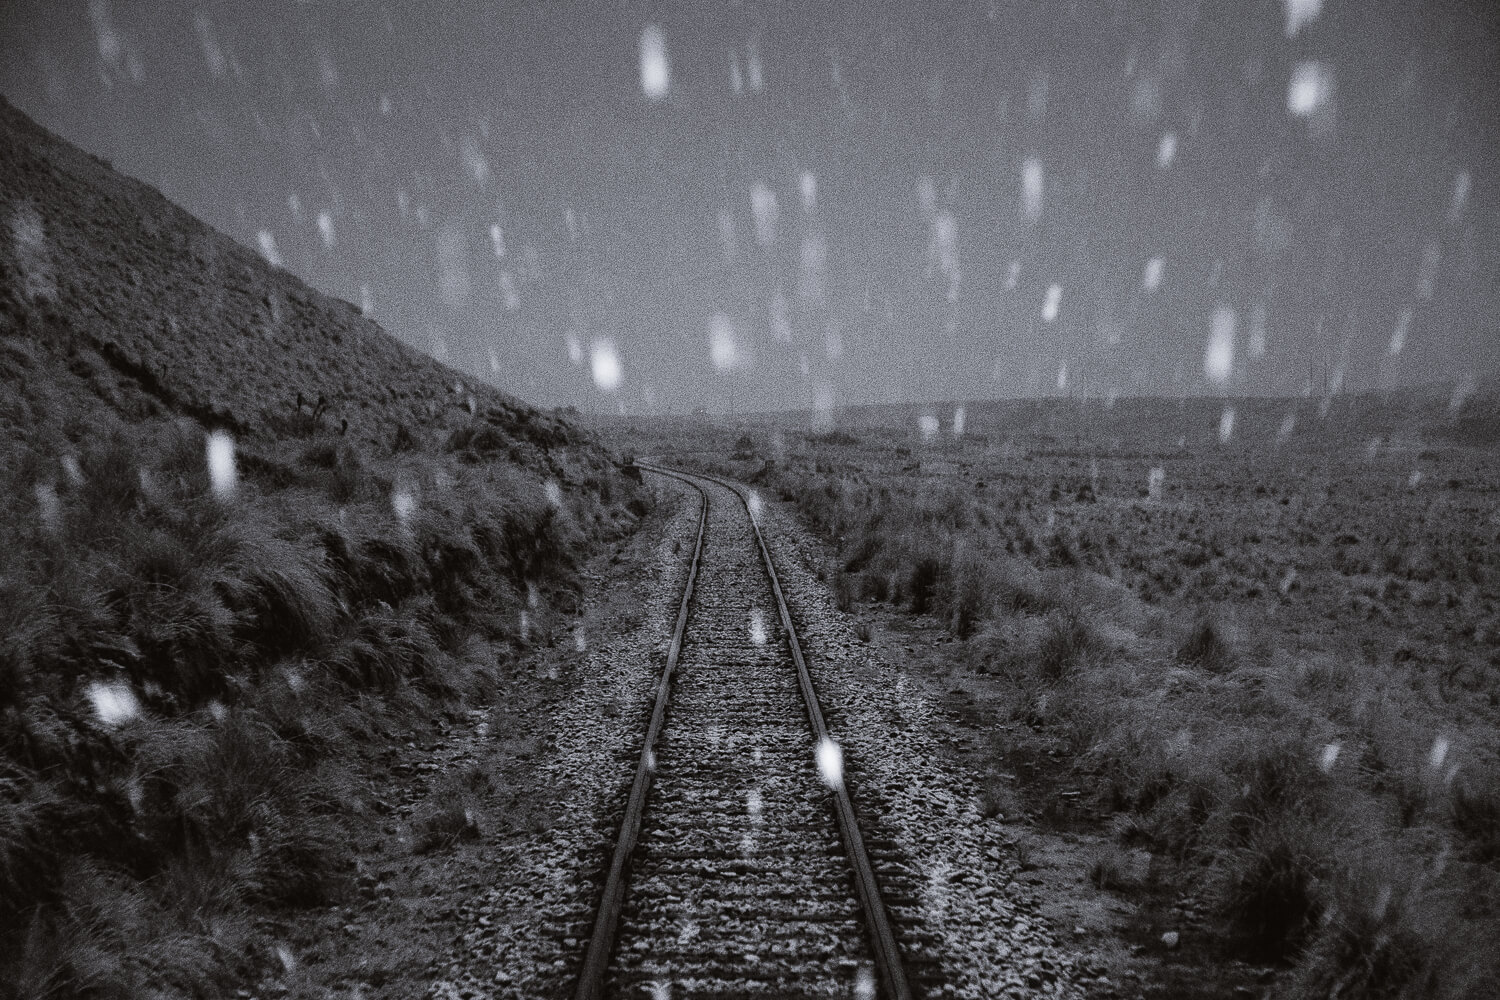 """A blizzard in the Andes on the Belmond Andean Explorer. Travel photography and guide by © Natasha Lequepeys for """"And Then I Met Yoko"""". #peru #sacredvalley #cusco #laketiticaca #belmondandeanexplorer #perurail #perutrain #luxurytravel #sleepertrain #photoblog #travelblog #travelphotography #fujifilm #andes #travel #travelperu #cuscotolaketiticaca #spiritofthelake #belmond #puno #southamerica"""